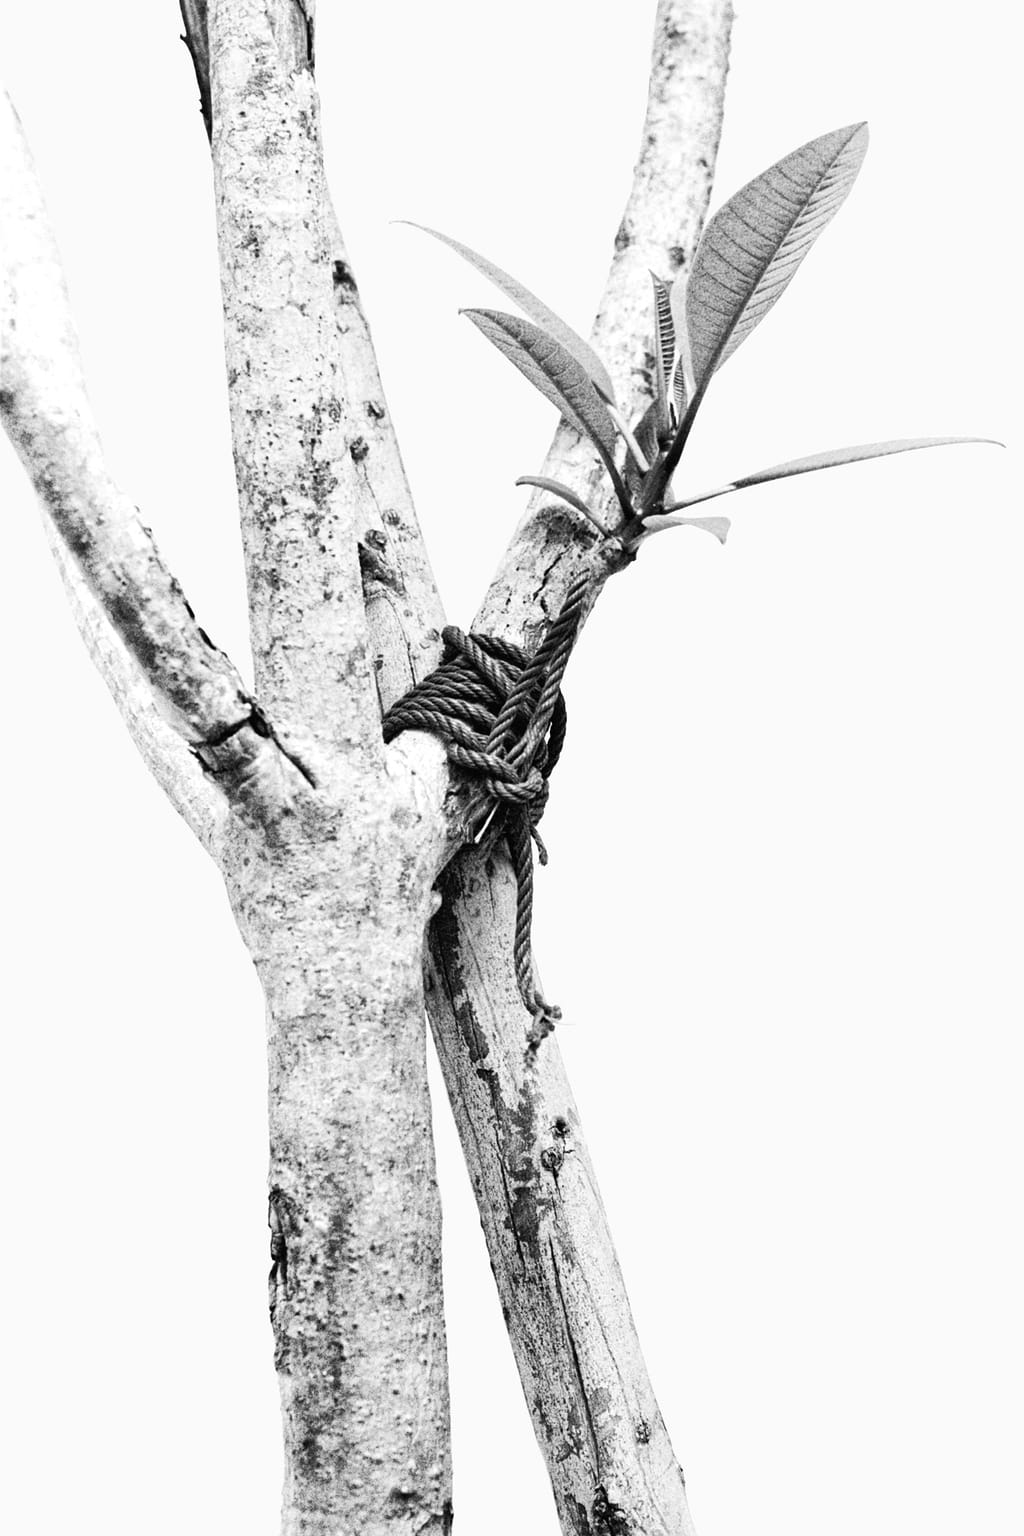 Black and white photo of a tree tied to a wooden branch, supporting it; against a white background. One of the branches of the tree has a young branch growing out of it.